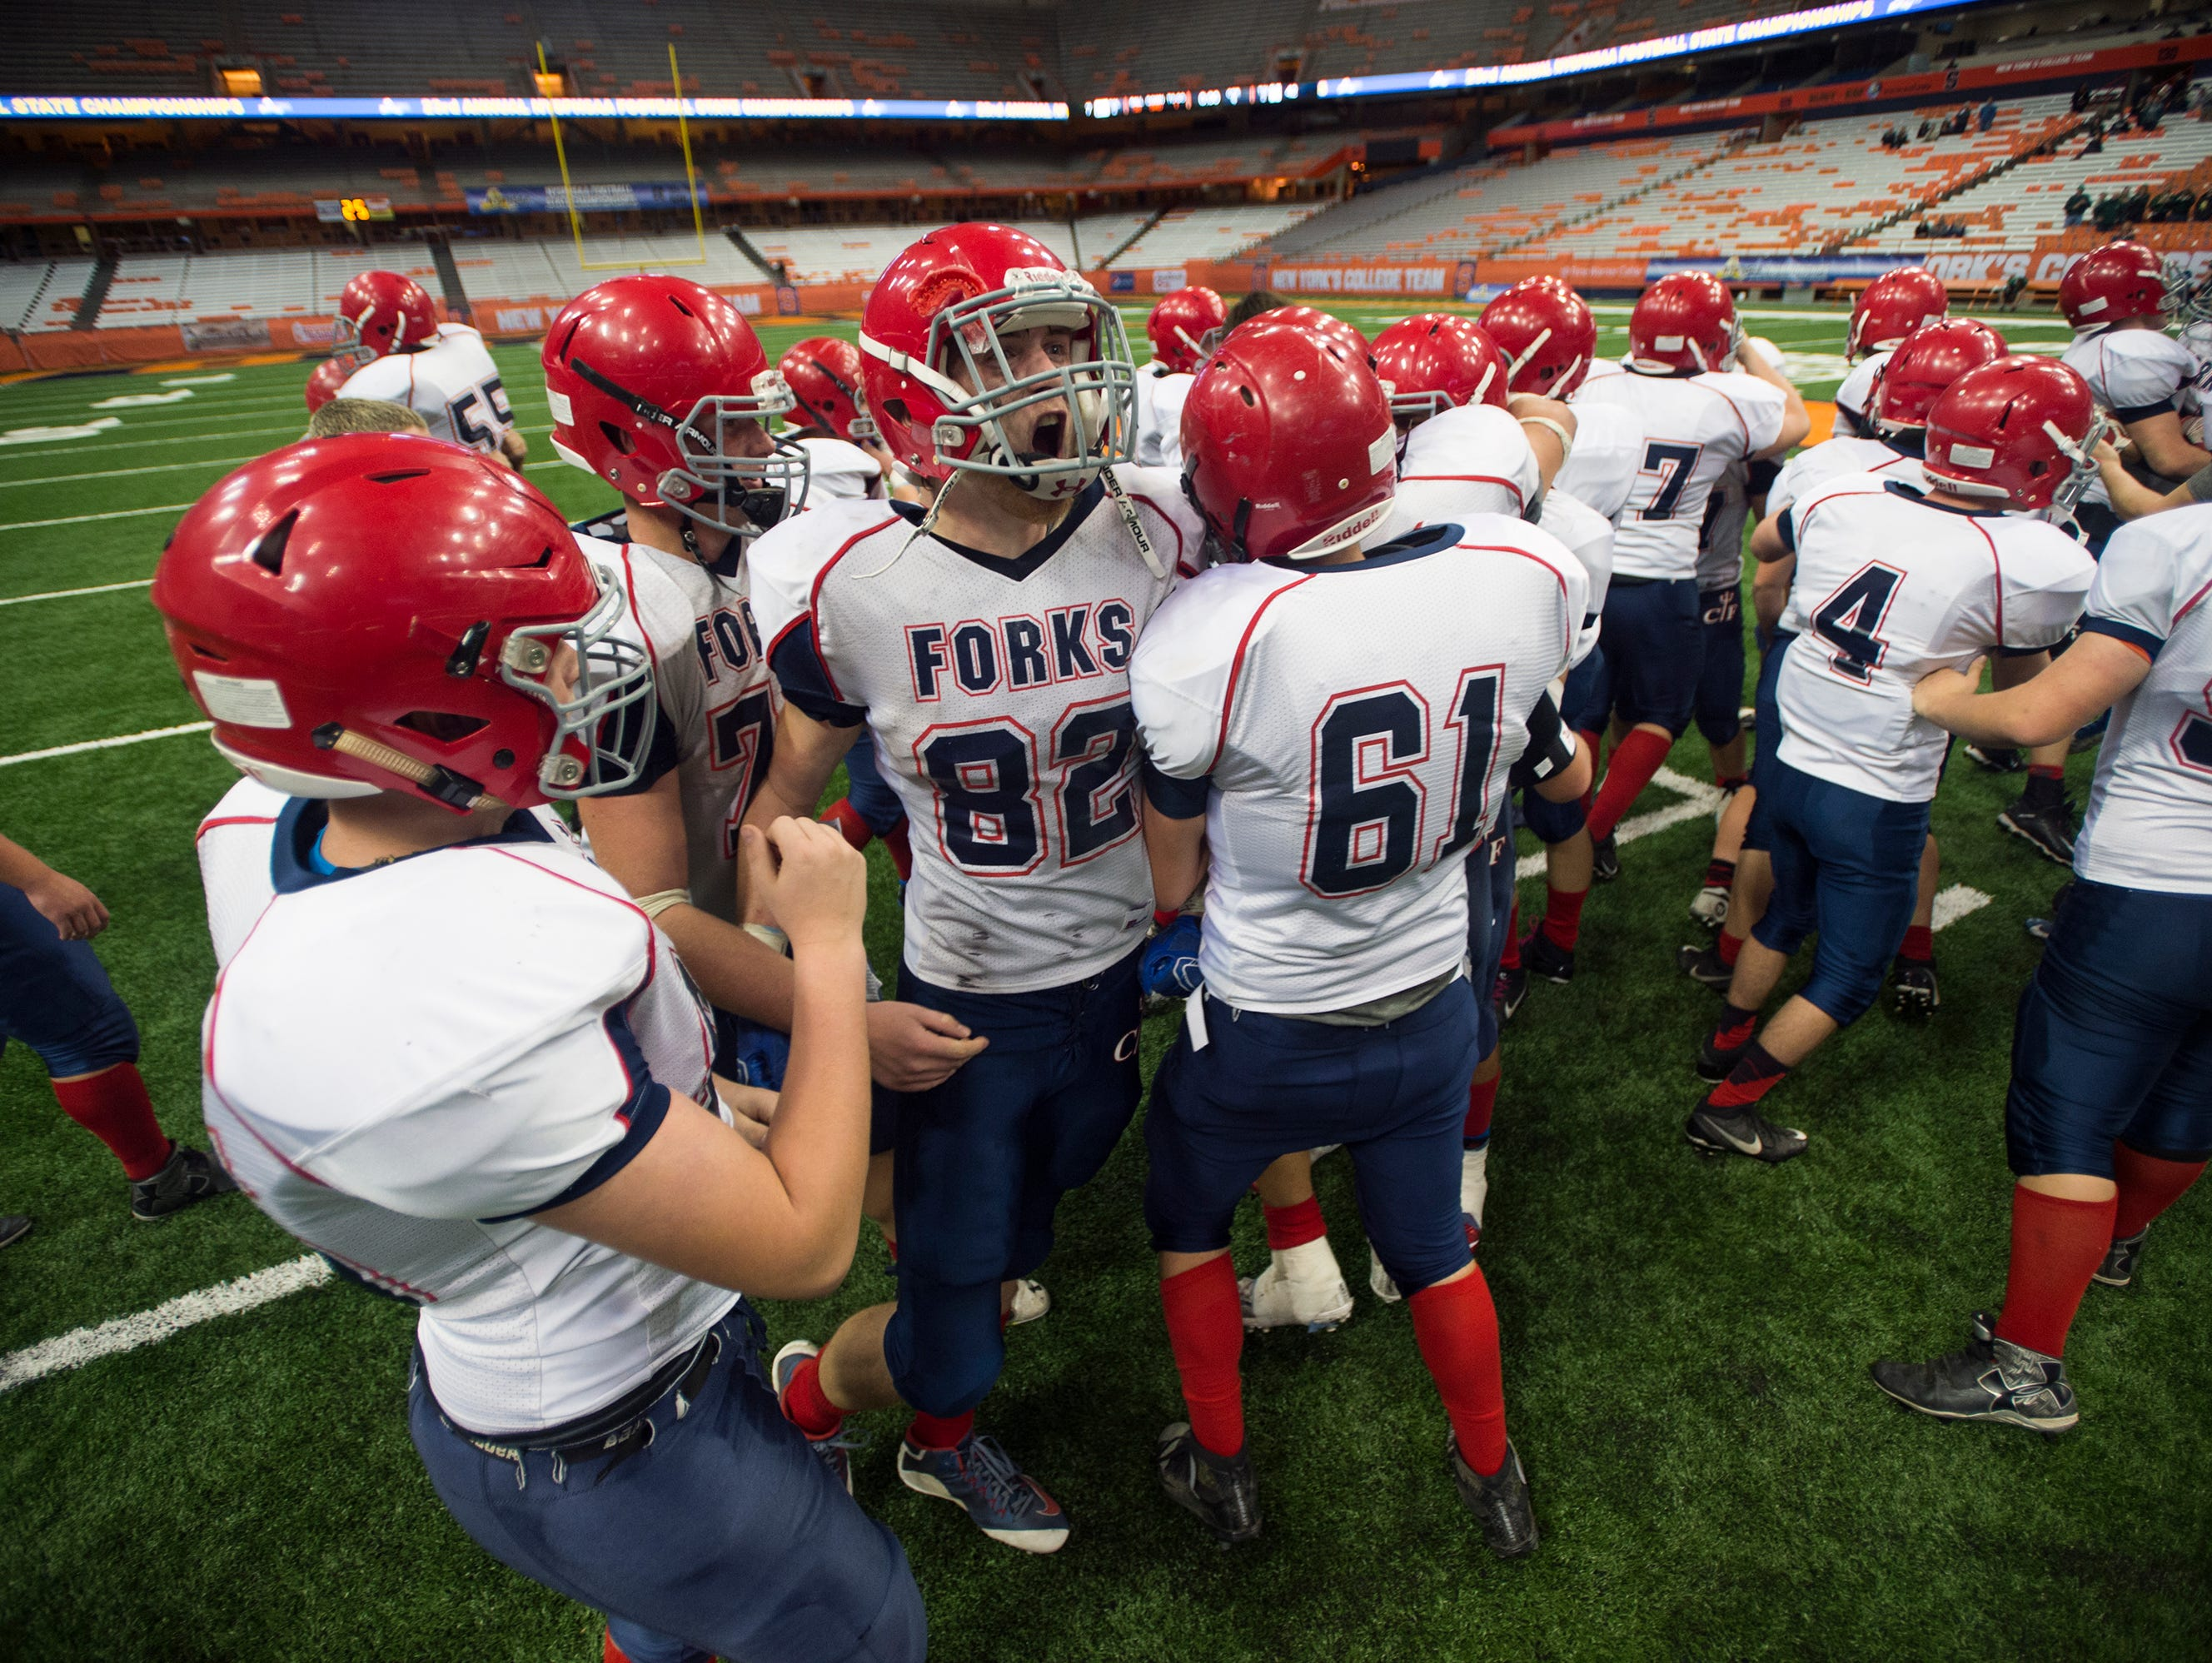 Chenango Forks players celebrate on the field following their 42-7 win over Greenwich to win their third straight Class C state championship in Syracuse on Friday, Nov. 27, 2015.